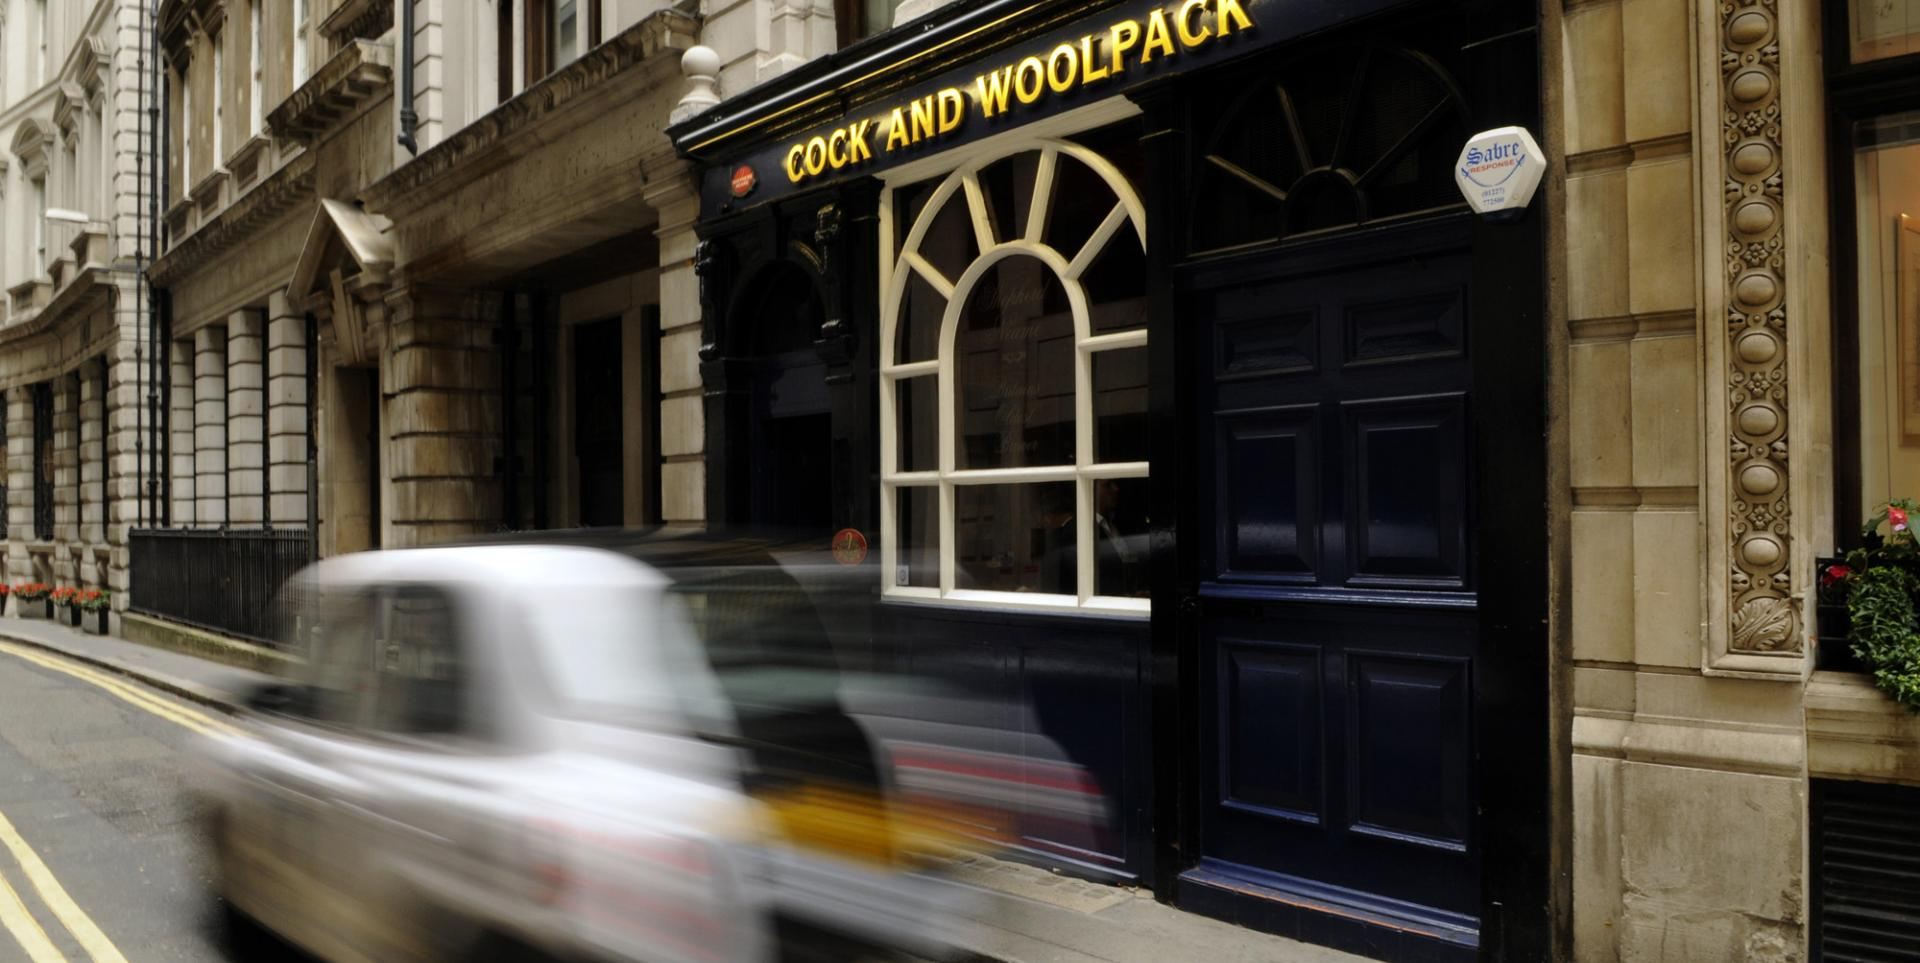 Cock and Woolpack - London - Exterior